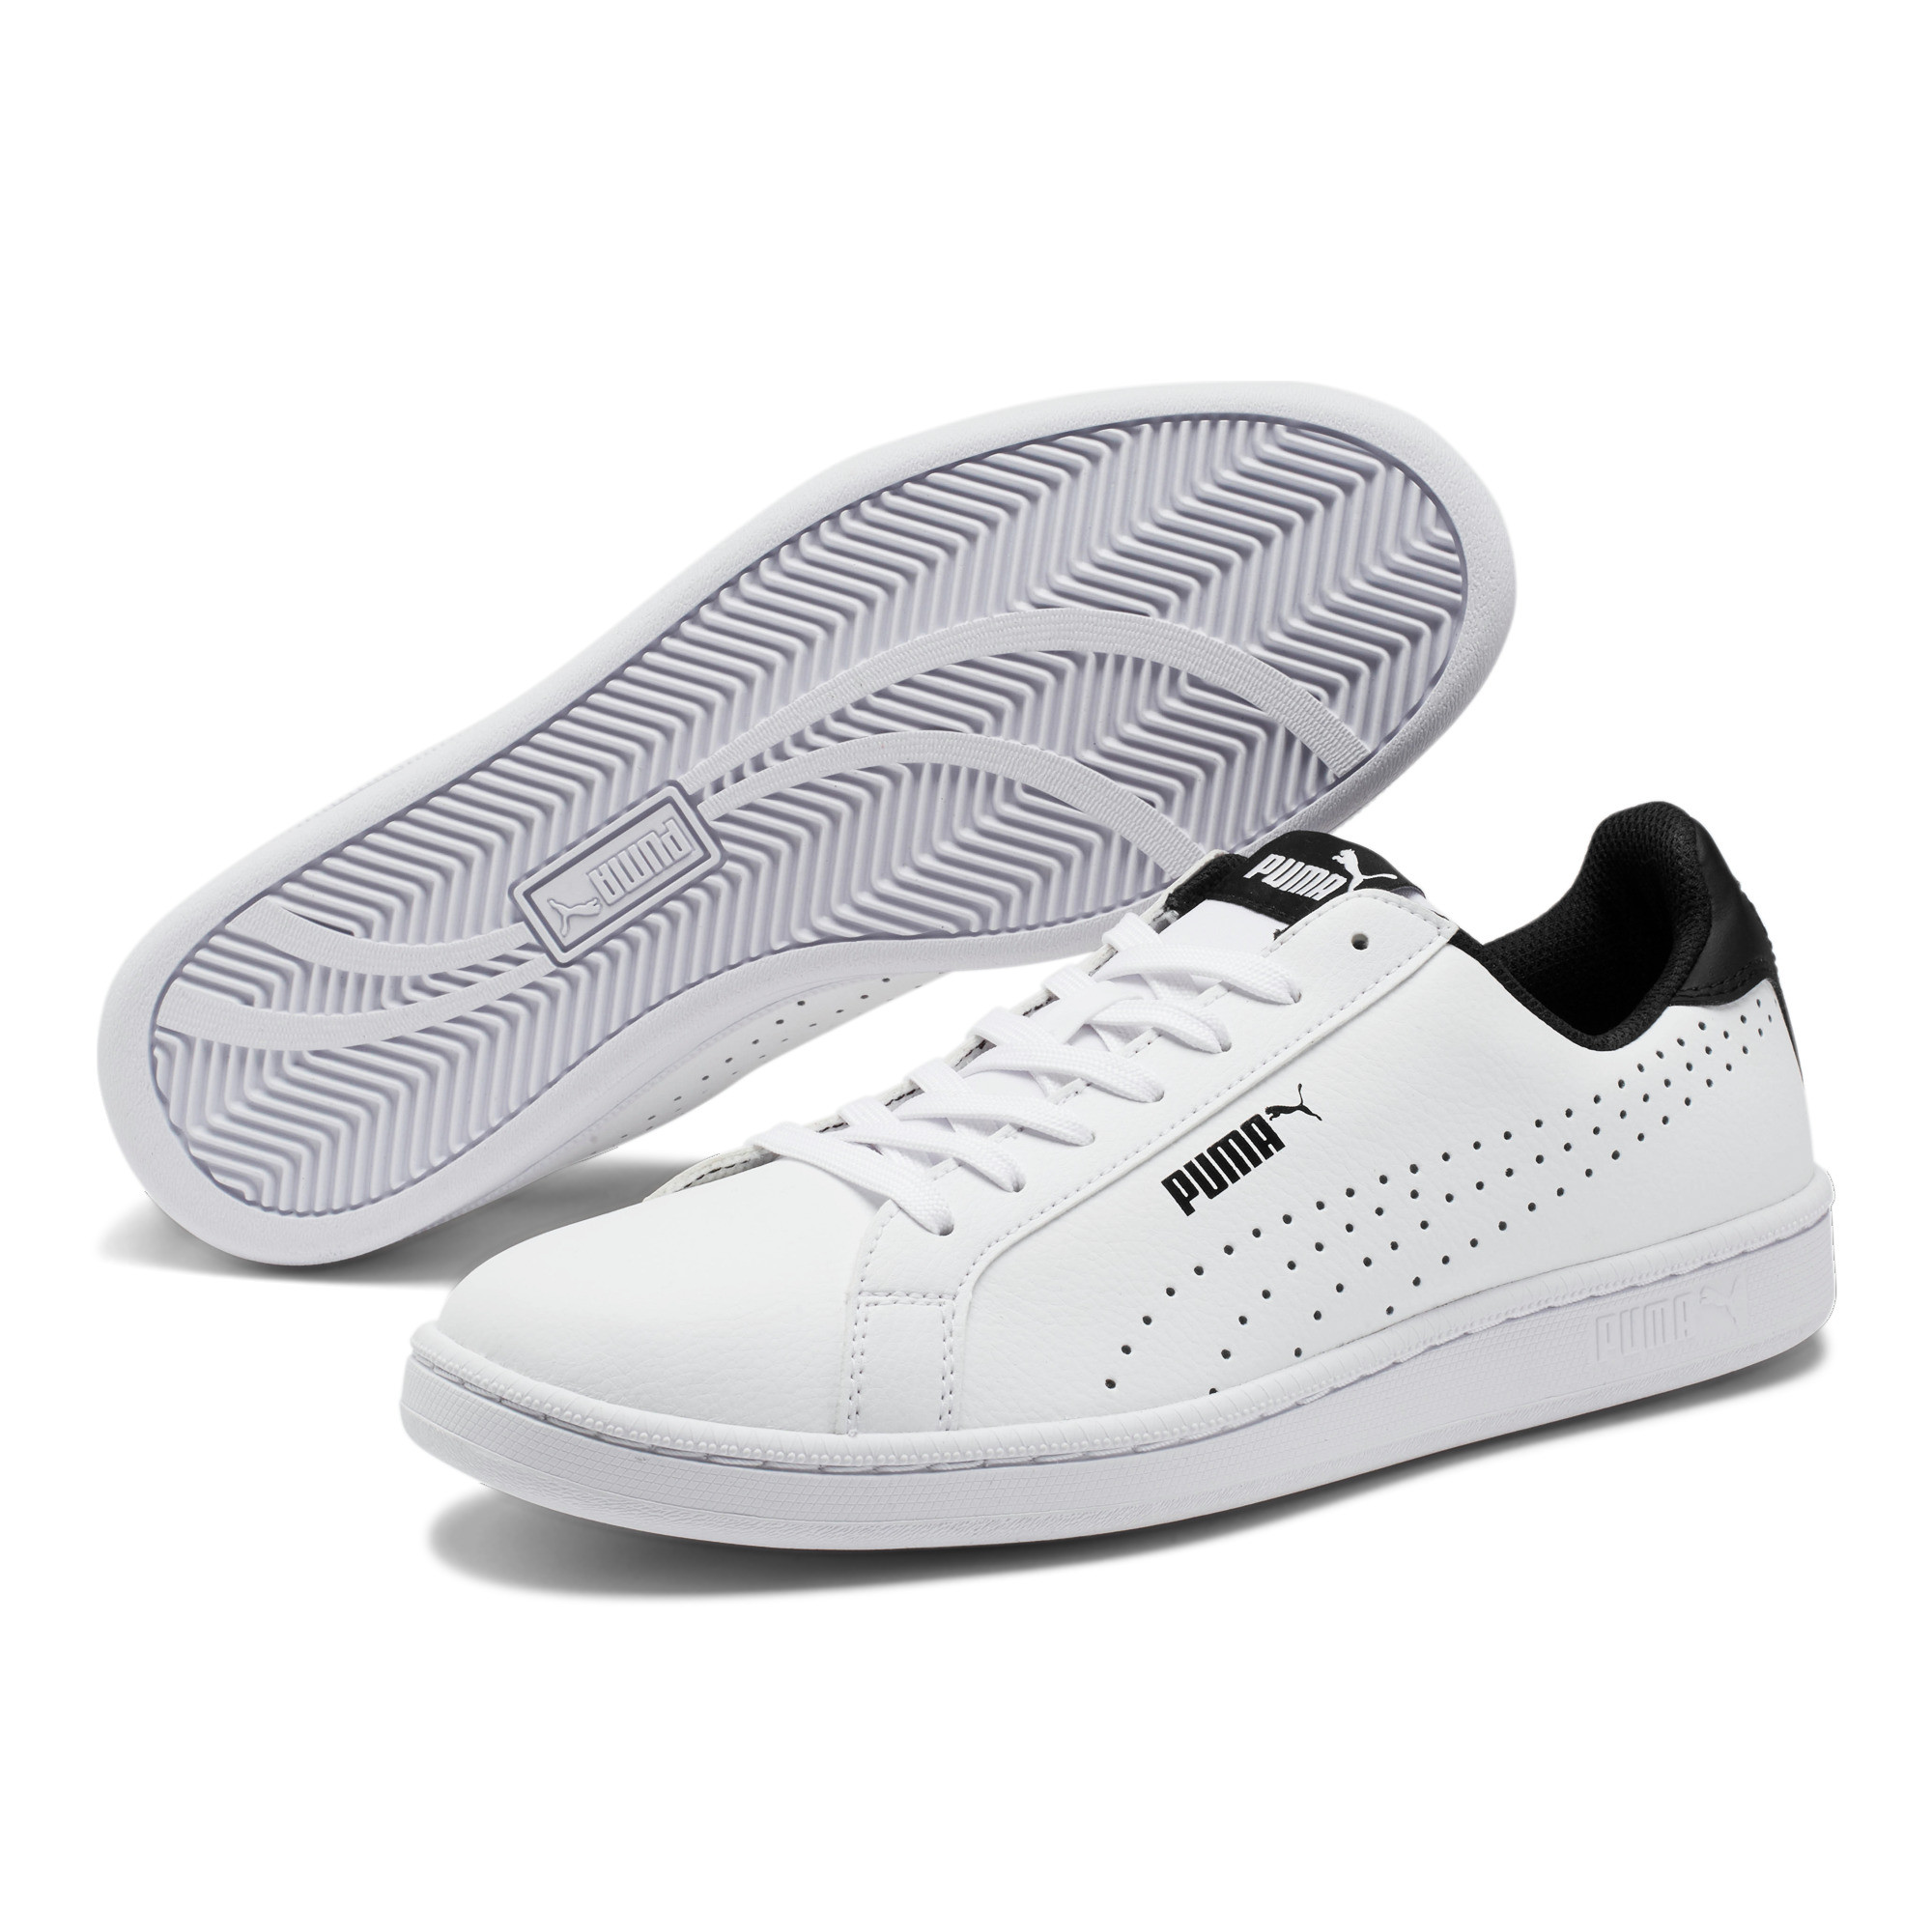 PUMA-PUMA-Smash-Perf-Men-039-s-Sneakers-Men-Shoe-Basics thumbnail 12